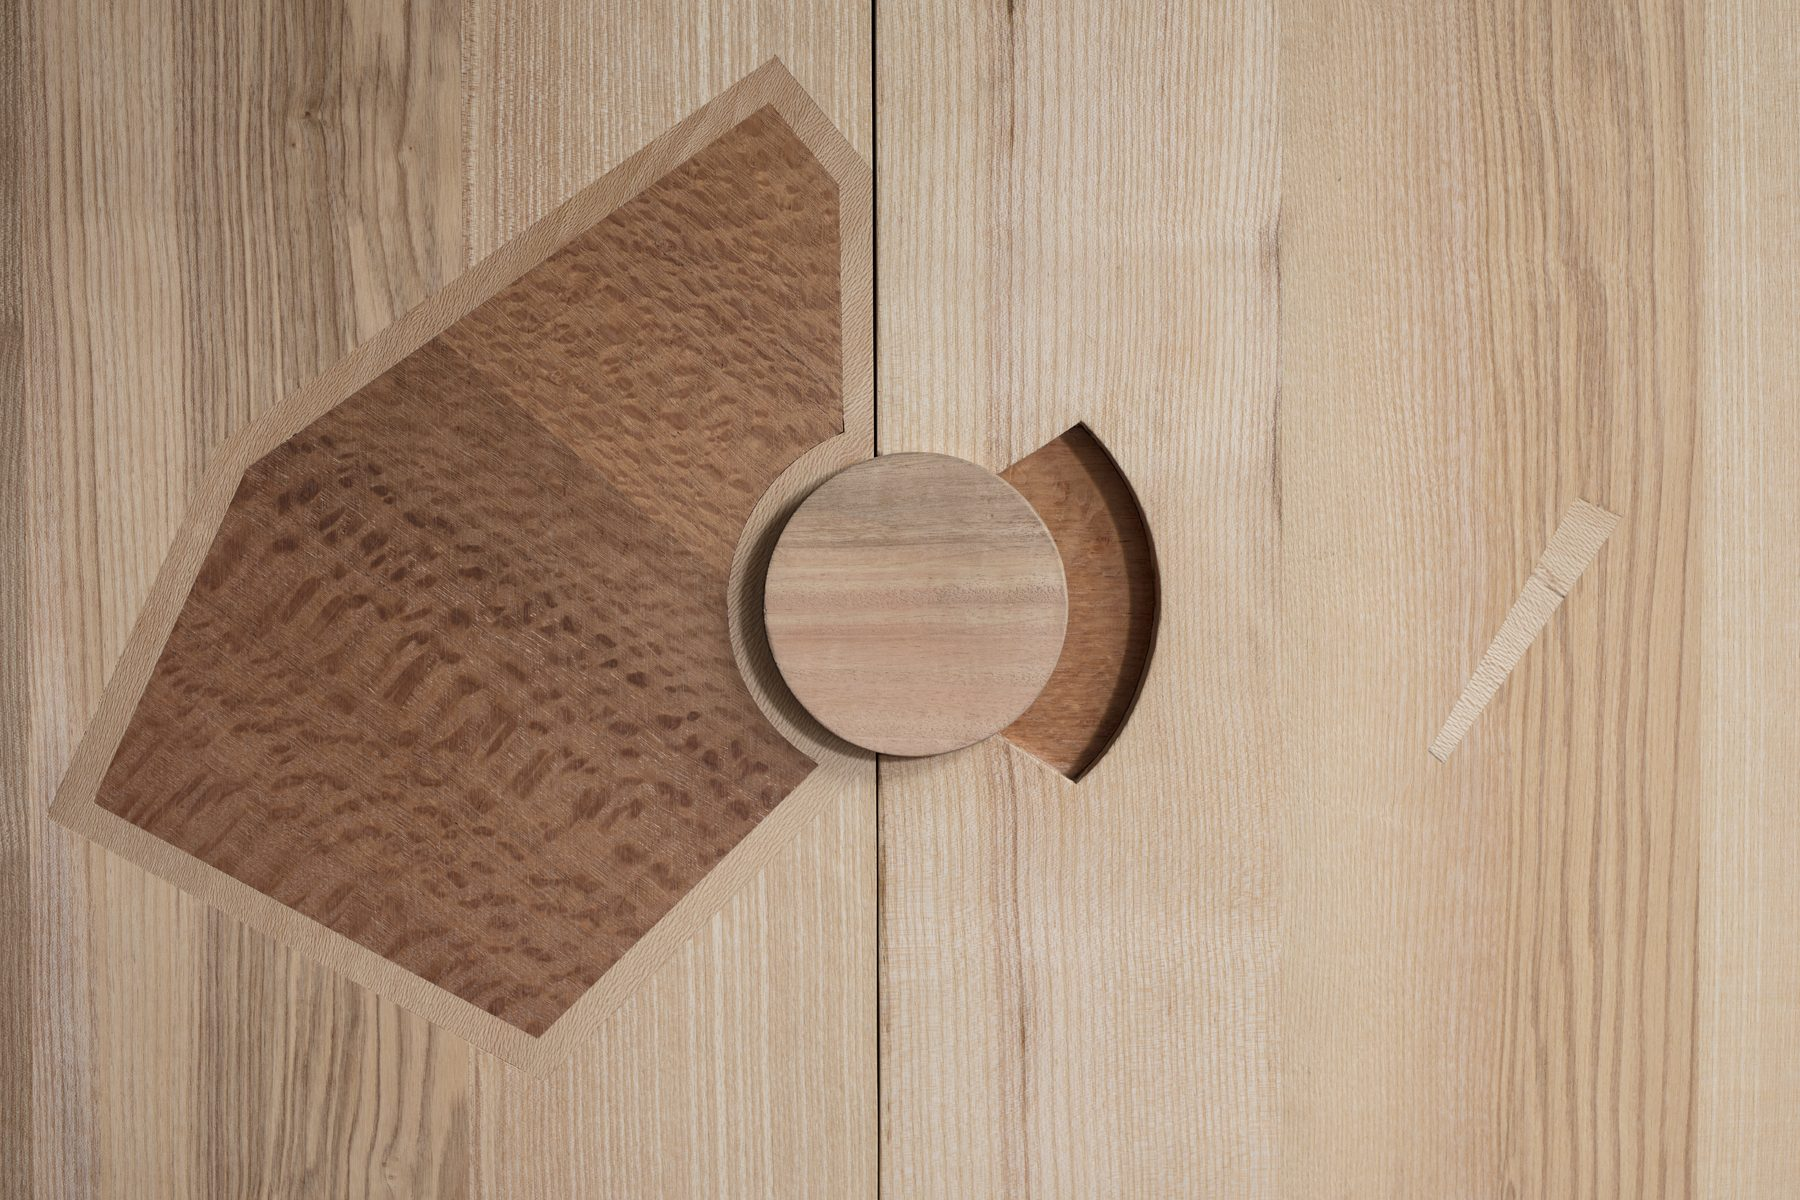 Jan Hendzel Studio wardrobe handle detail